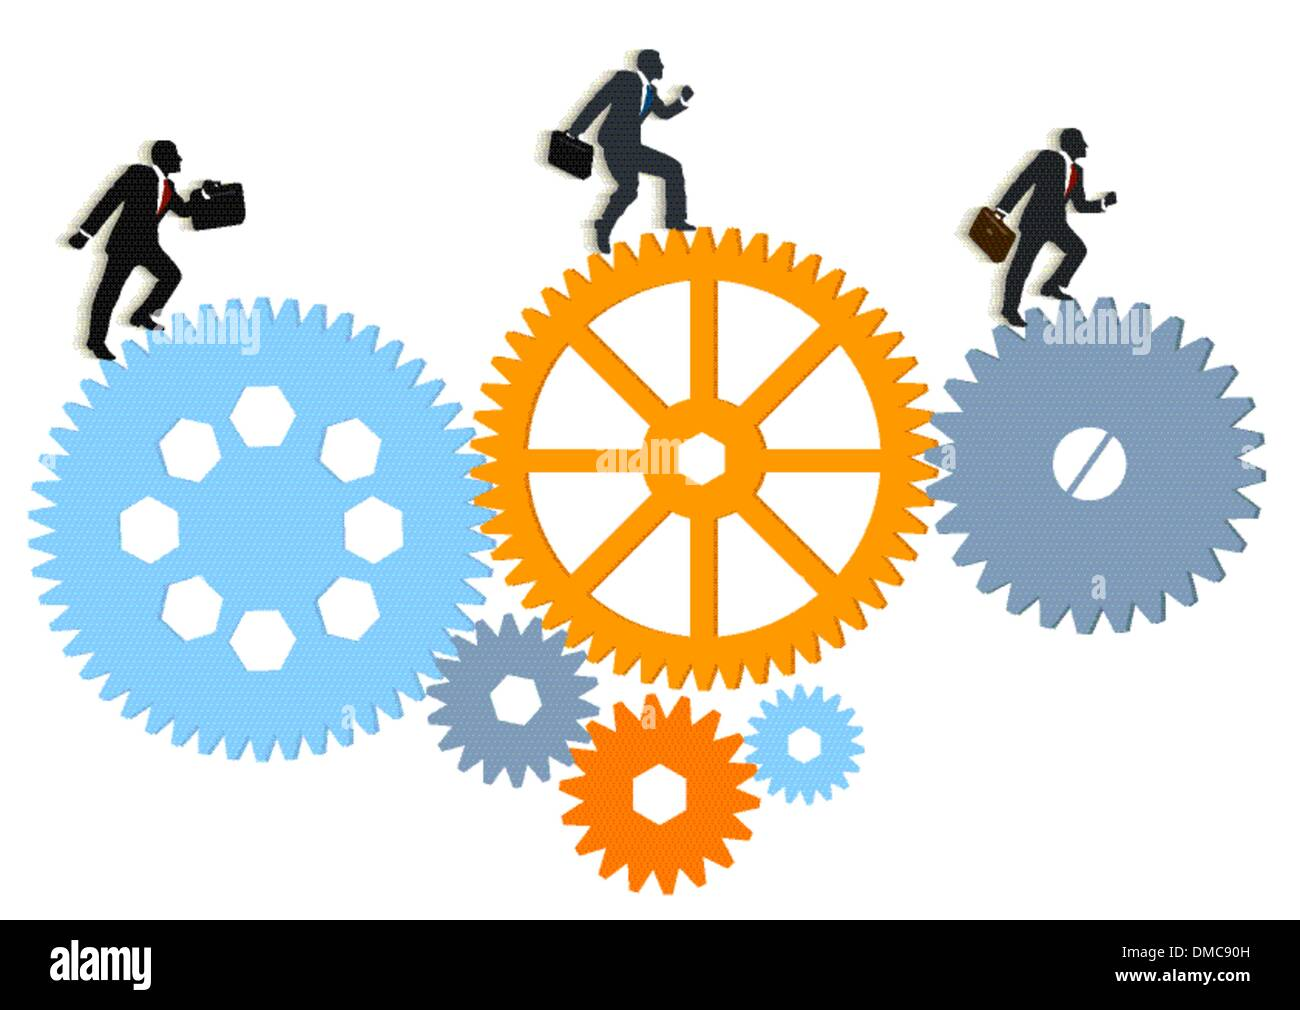 a group of managers on the move - Stock Image